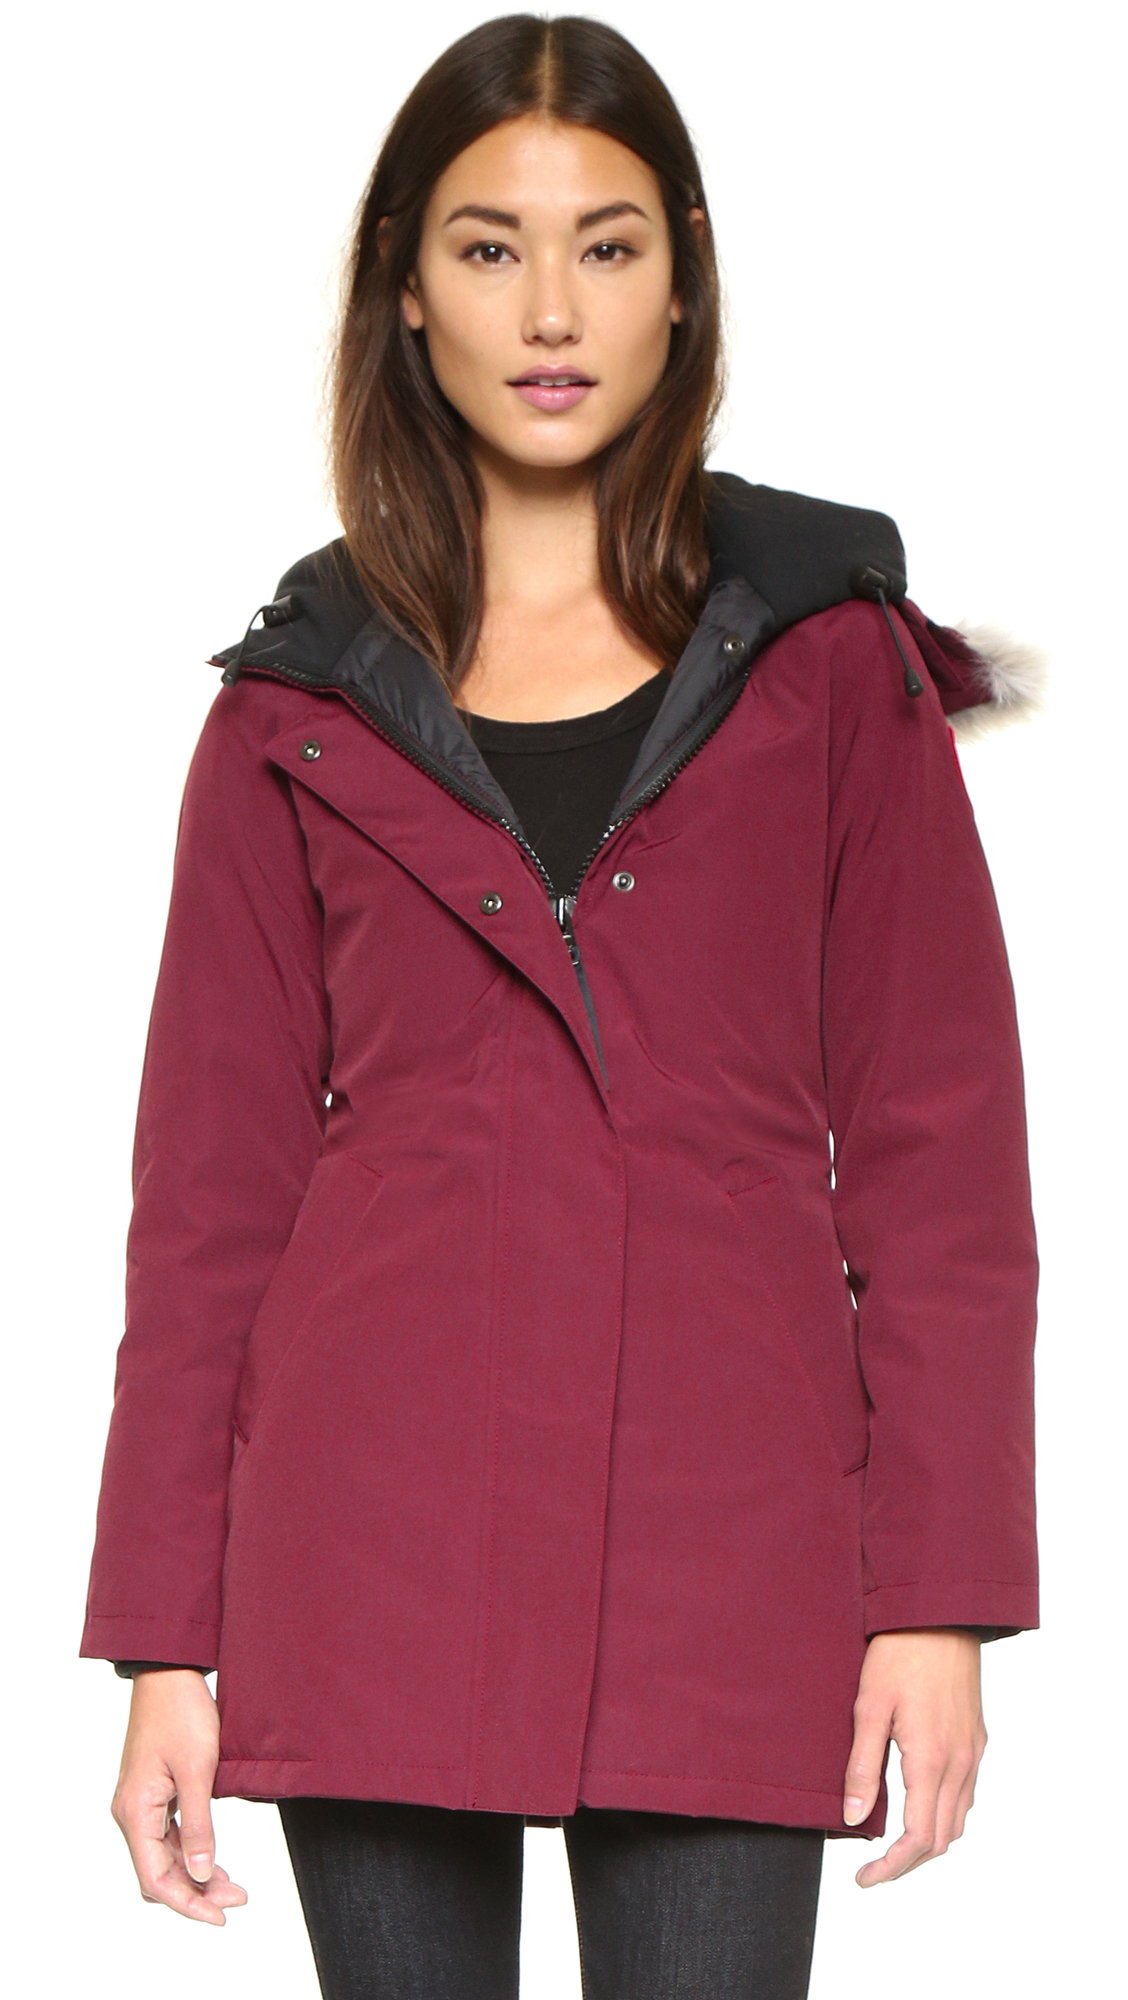 canada goose victoria parka bordeaux in purple bordeaux. Black Bedroom Furniture Sets. Home Design Ideas